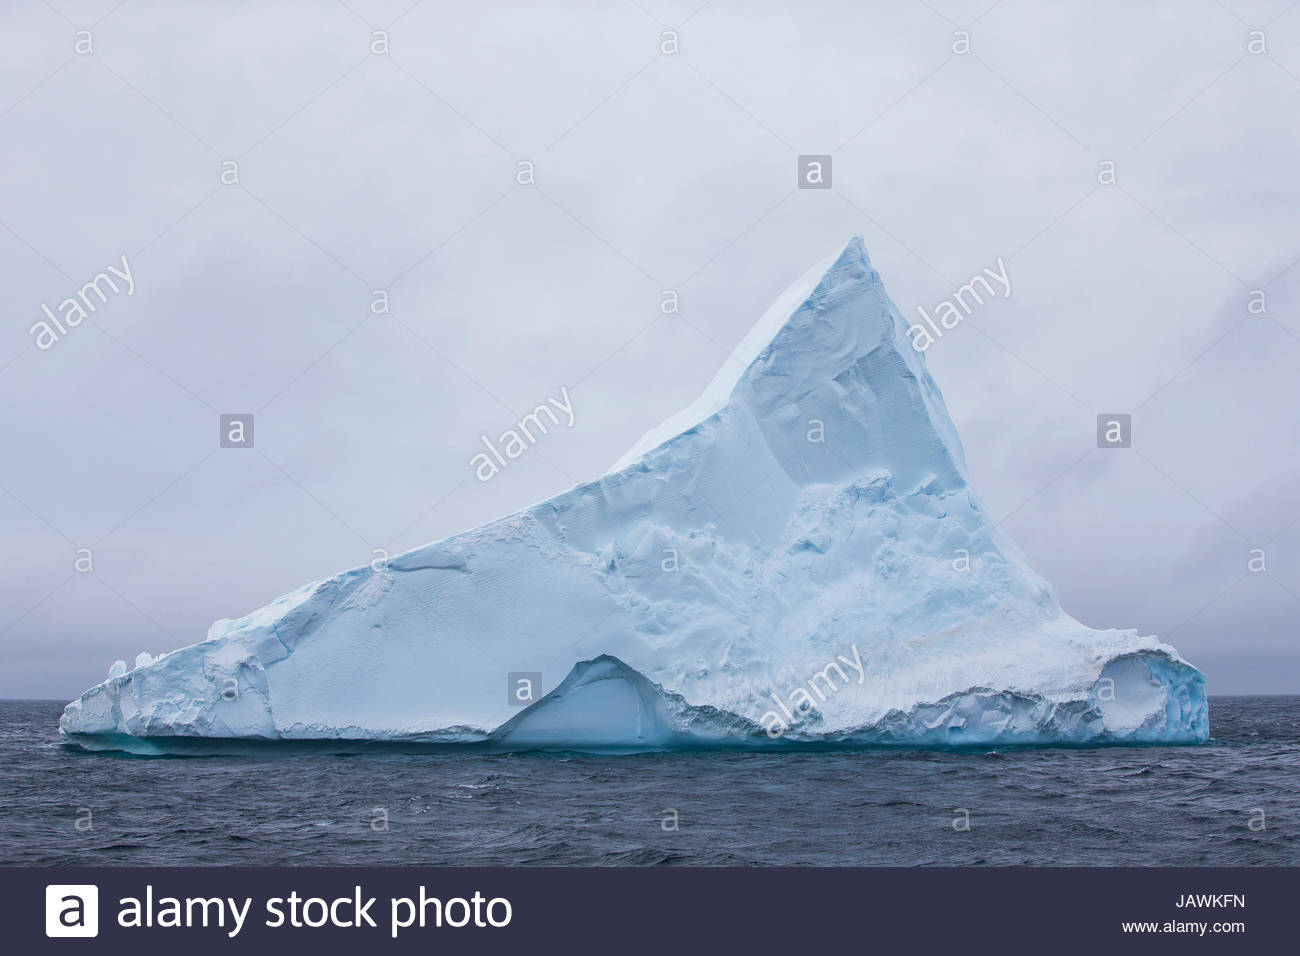 Tabular iceberg with a point in Antarctica. - Stock Image